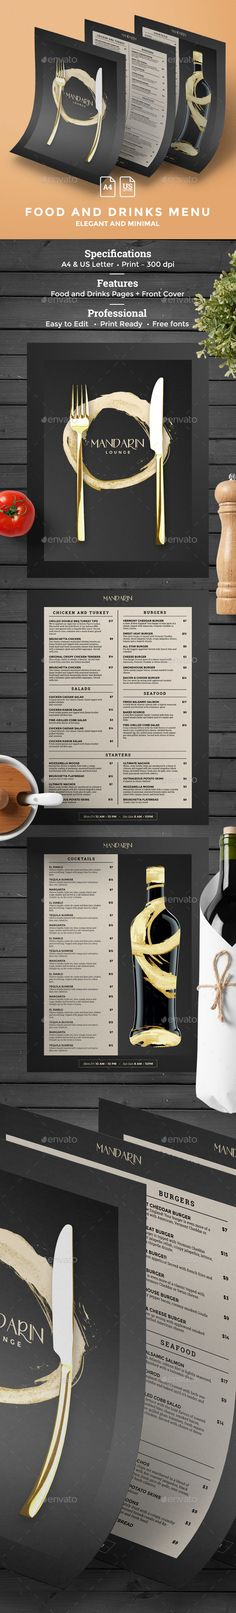 Menu Template — Photoshop PSD #loft #clean • Download ➝ https://graphicriver.net/item/menu-template/19477903?ref=pxcr